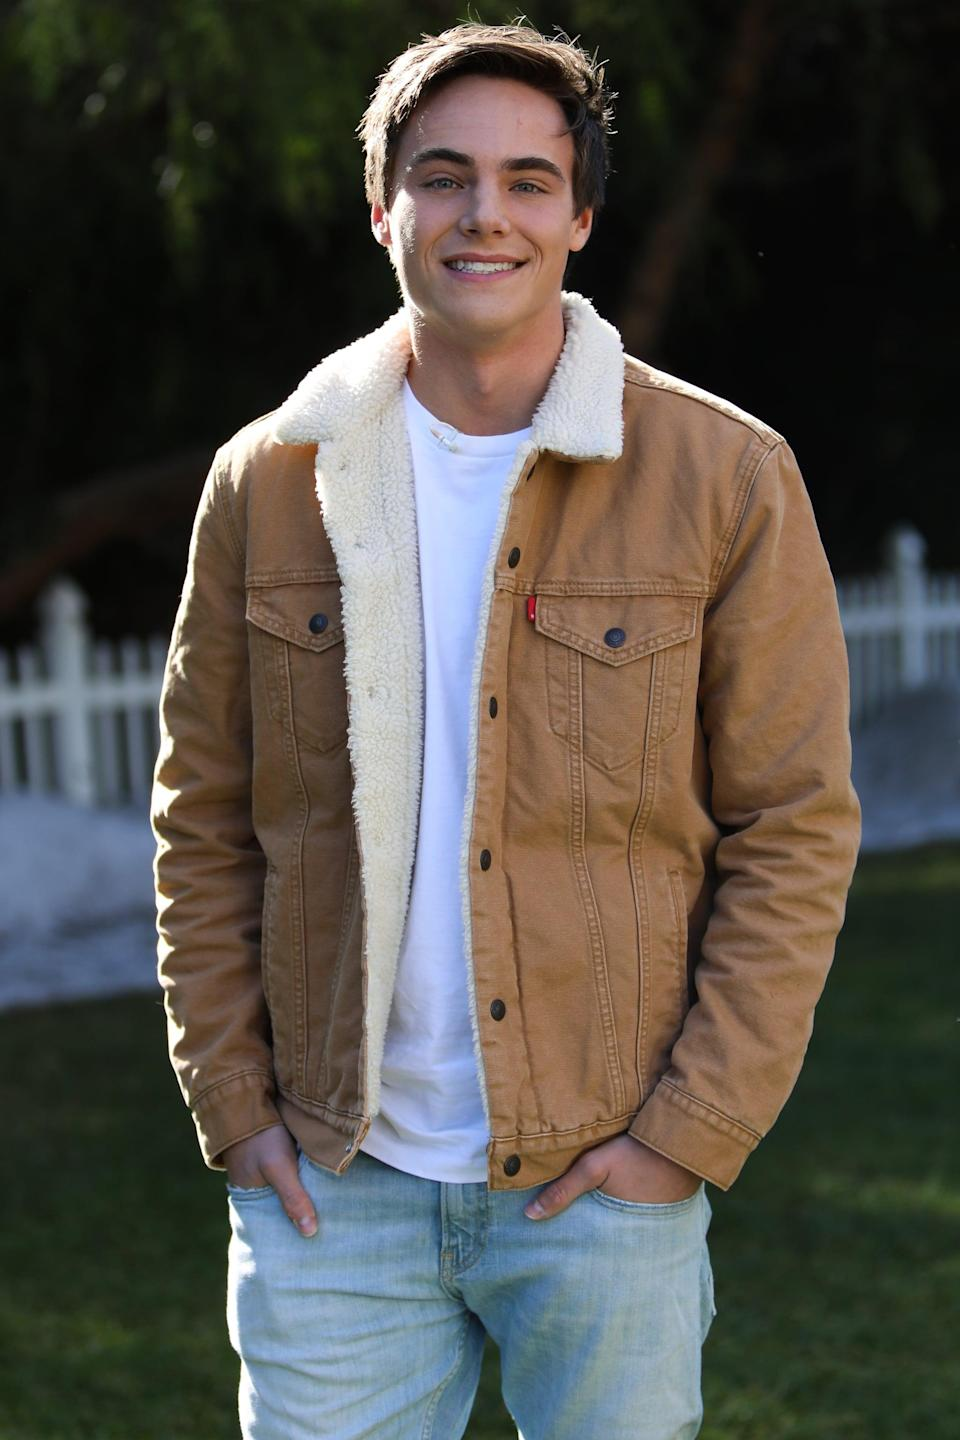 <p>Quinn is set to star as Will, a teenager sent to a Christian summer camp as an alternate to juvenile detention after getting in trouble with the law. Prior to this, he's best known for his work on Disney Channel: he played Xander on <strong>Bunk'd</strong> and appeared in the channel's 2016 remake of <strong>Adventures in Babysitting</strong>.</p>